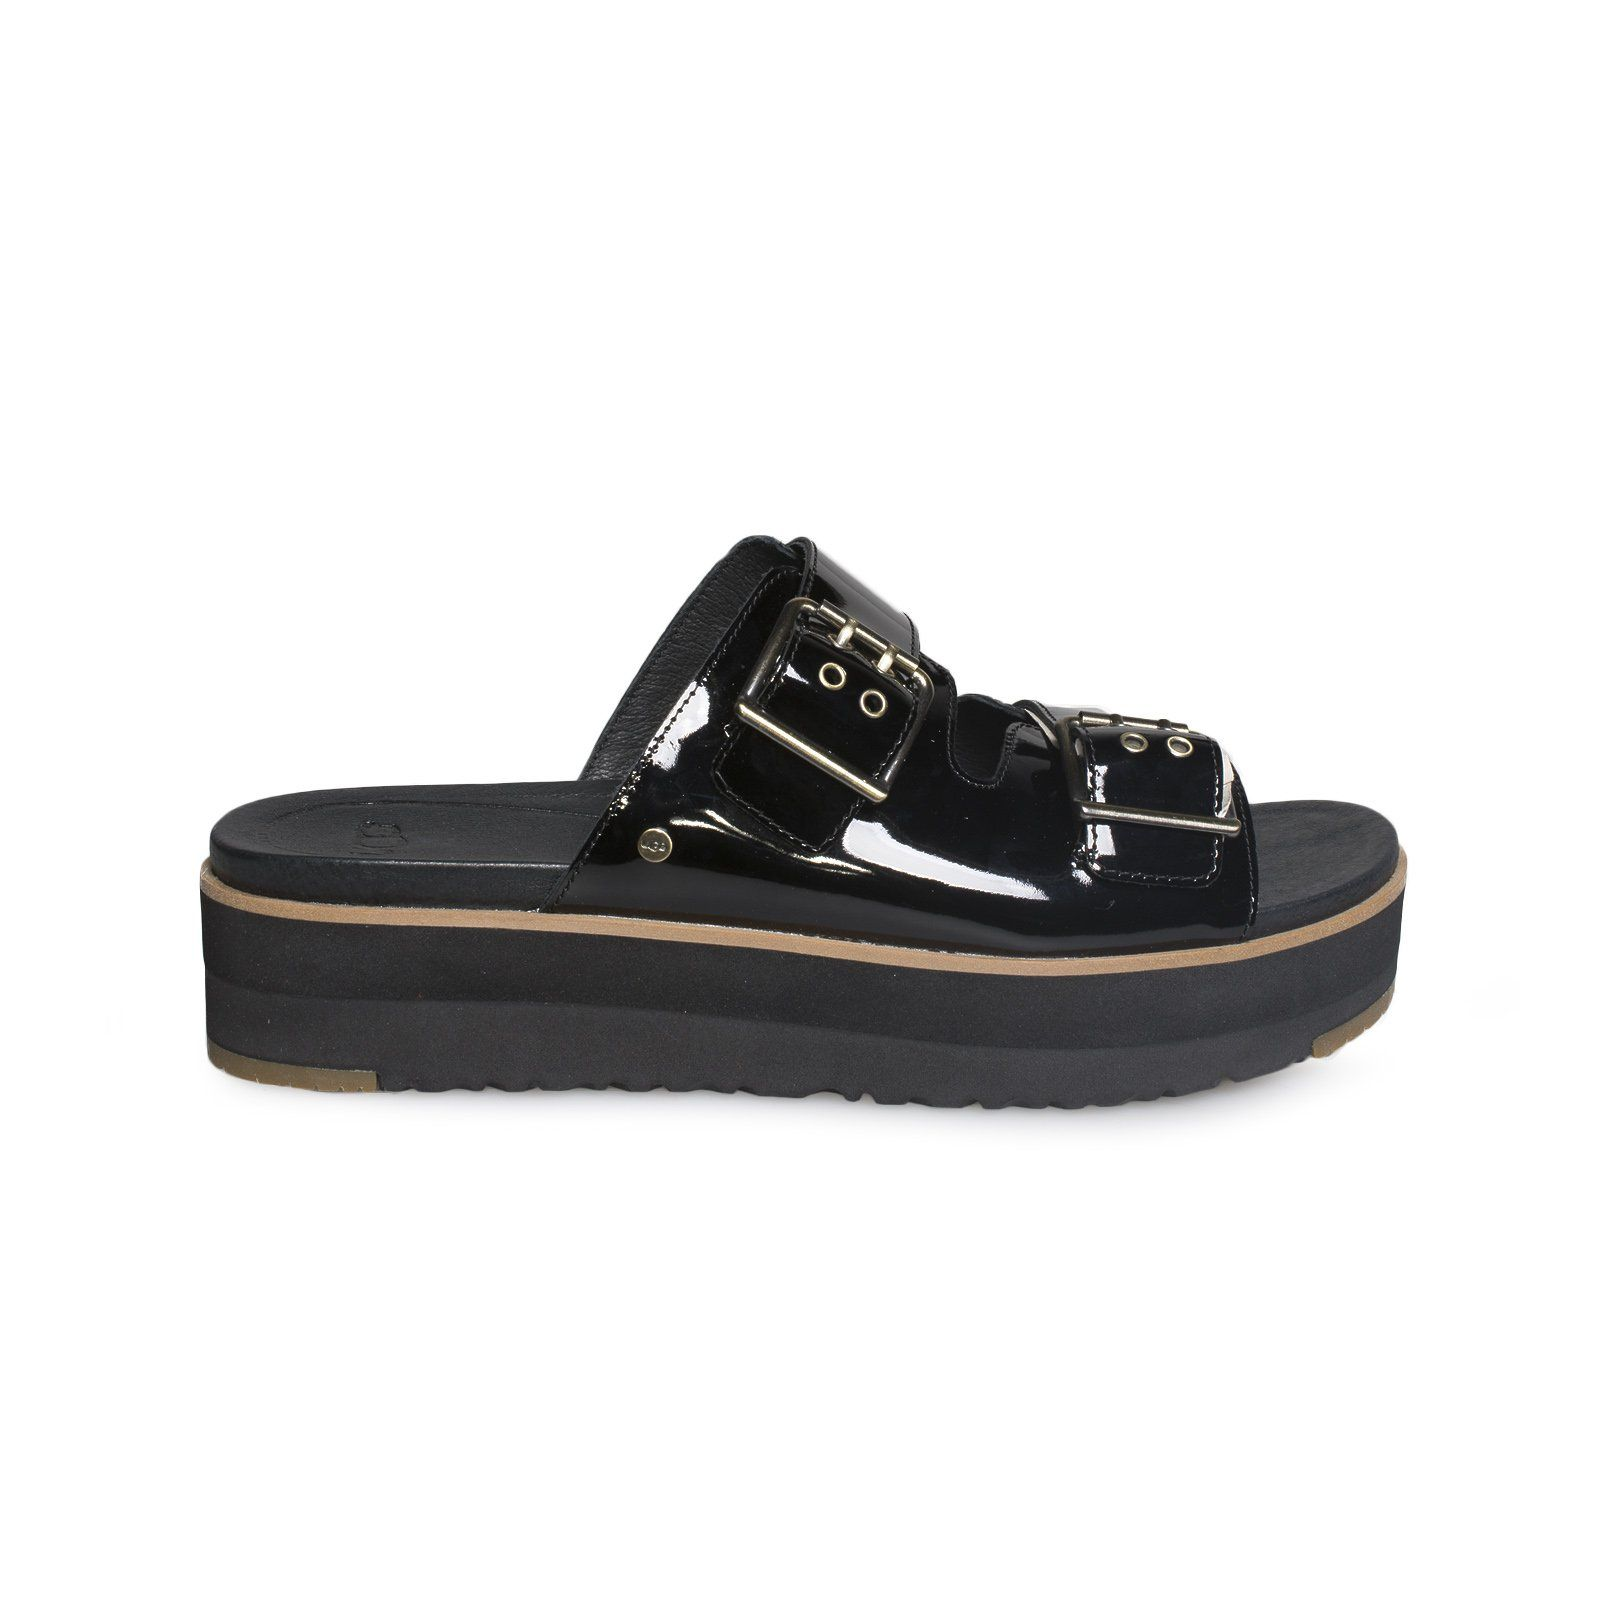 a10746e77618 UGG Cammie Black Sandal - Women s Slide Sandals